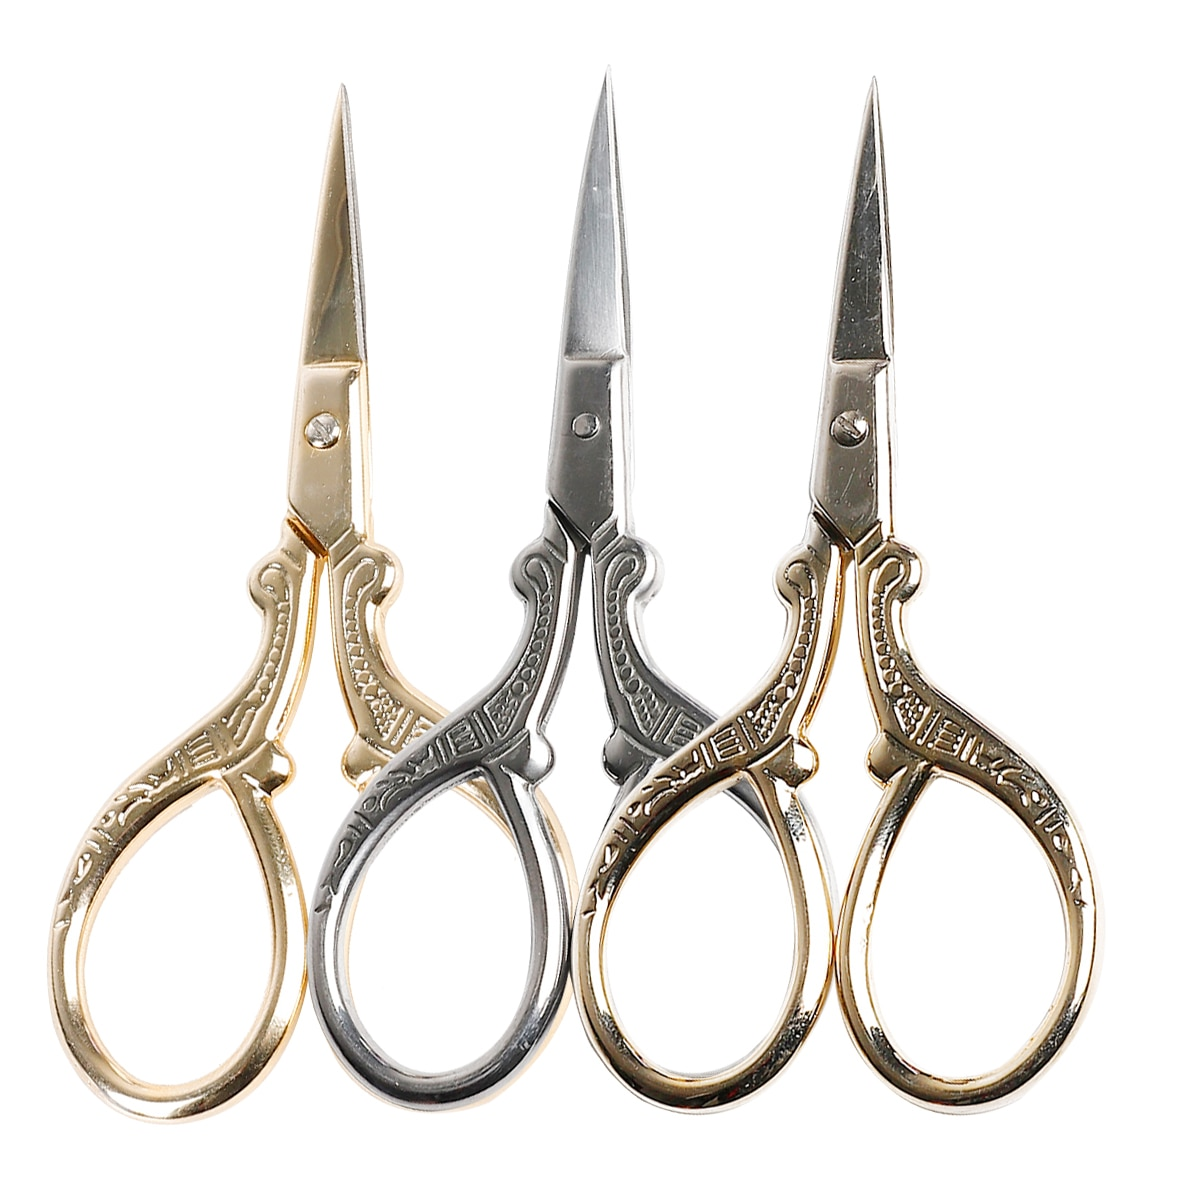 Stainless Steel Eyebrow Comb Scissors Manicure Nail Cuticle Trimmer Scissor Beauty Makeup Jewelry Ma